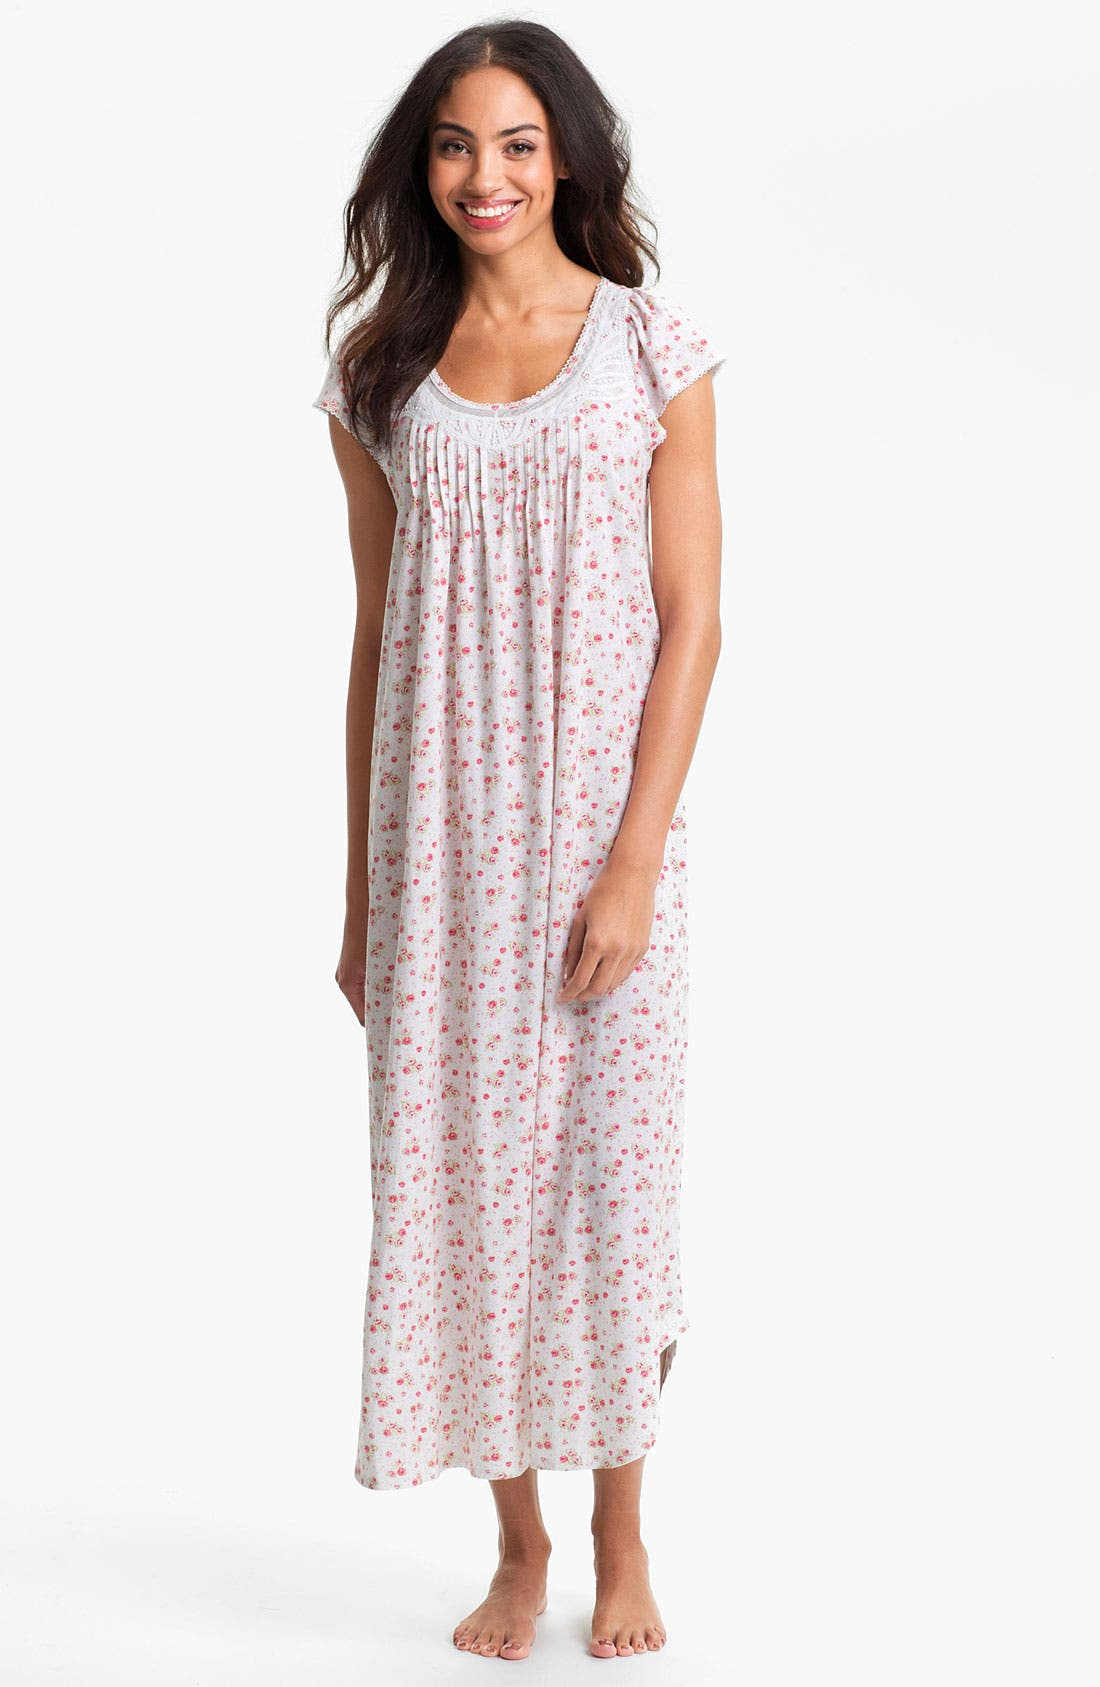 Alternate Image 1 Selected - Carole Hochman Designs 'Rose Cottage' Nightgown